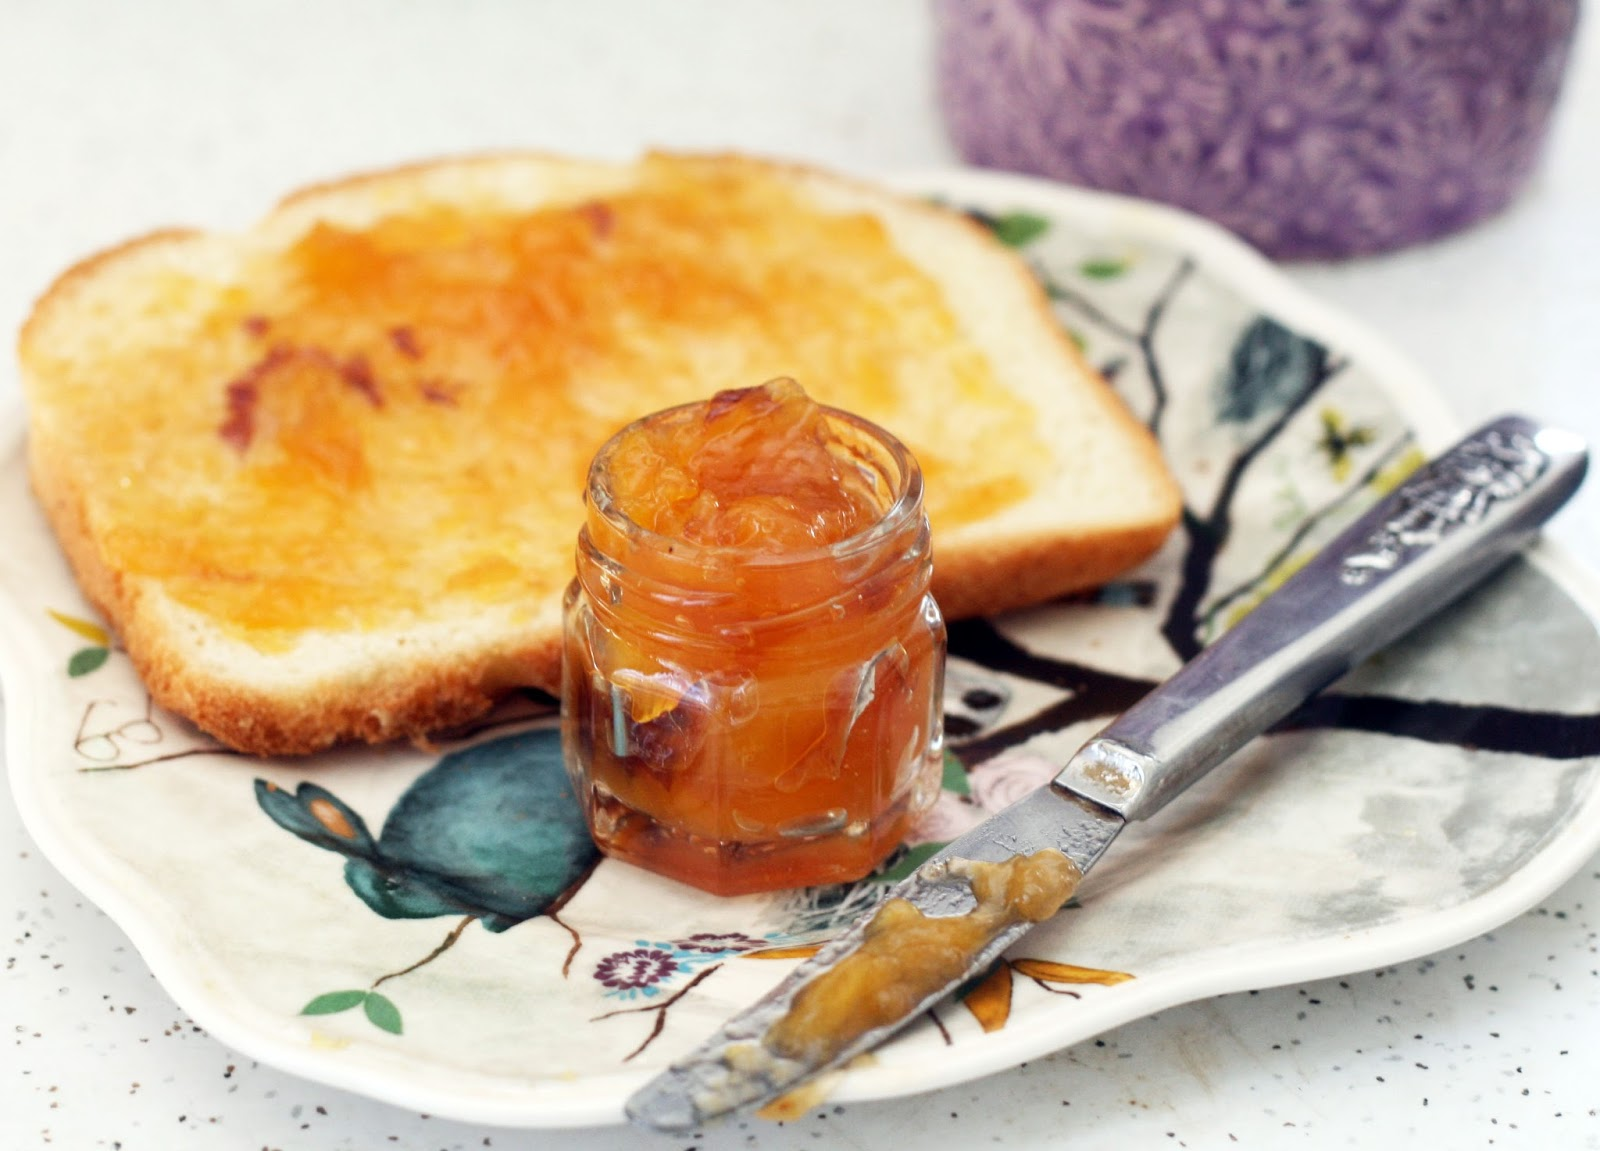 Recipes by rachel rappaport hibiscus peach jam 3 hibiscus flowers in syrup drained and chopped 2 teaspoons hibiscus syrup 2 cups sugar 1 teaspoon citric acid 3 tablespoons low sugar pectin izmirmasajfo